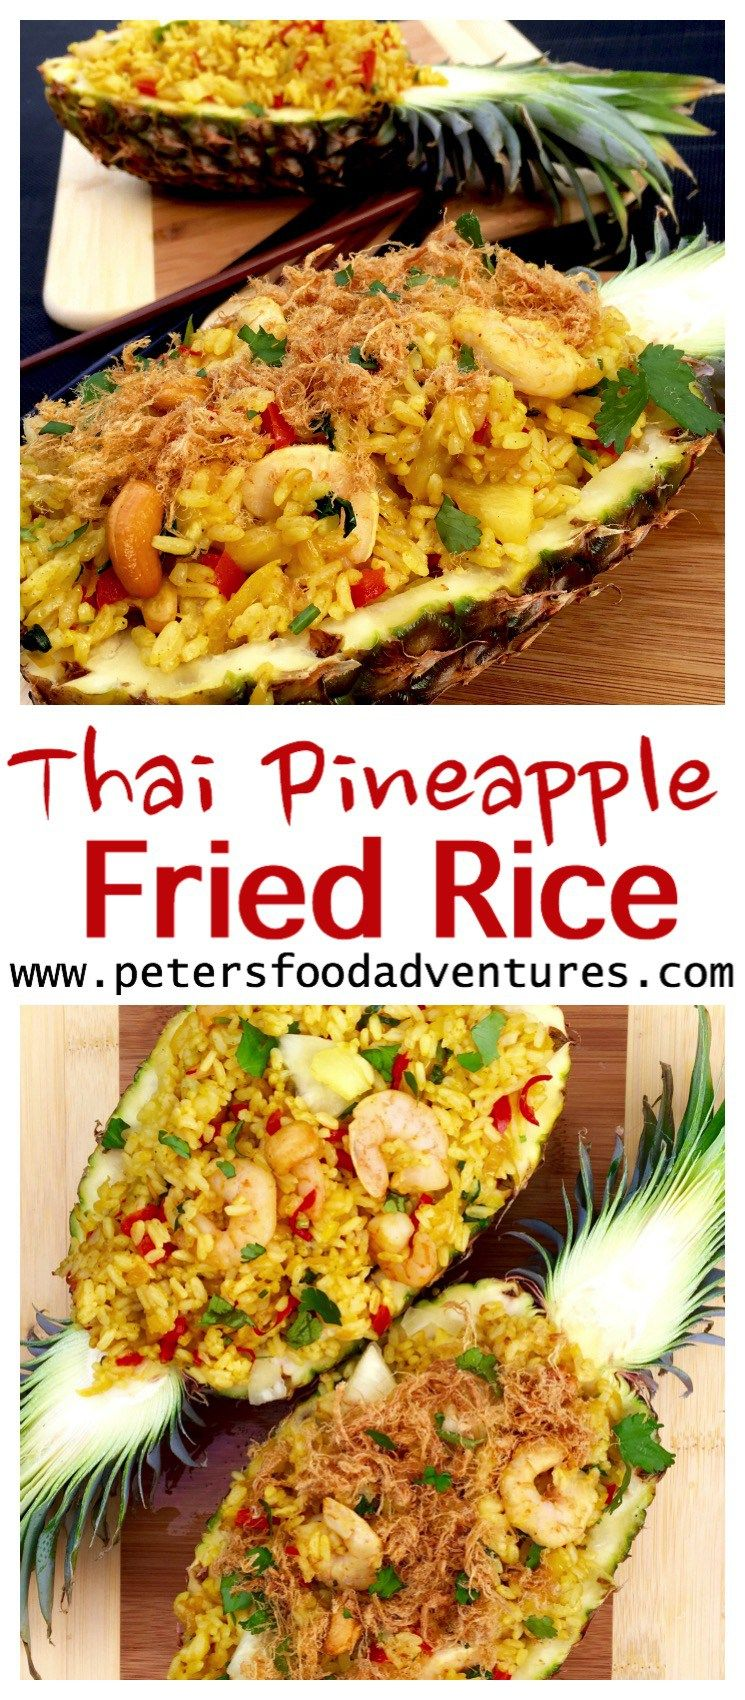 Authentic thai pineapple fried rice easy to make and delicious authentic thai pineapple fried rice easy to make and delicious ccuart Image collections